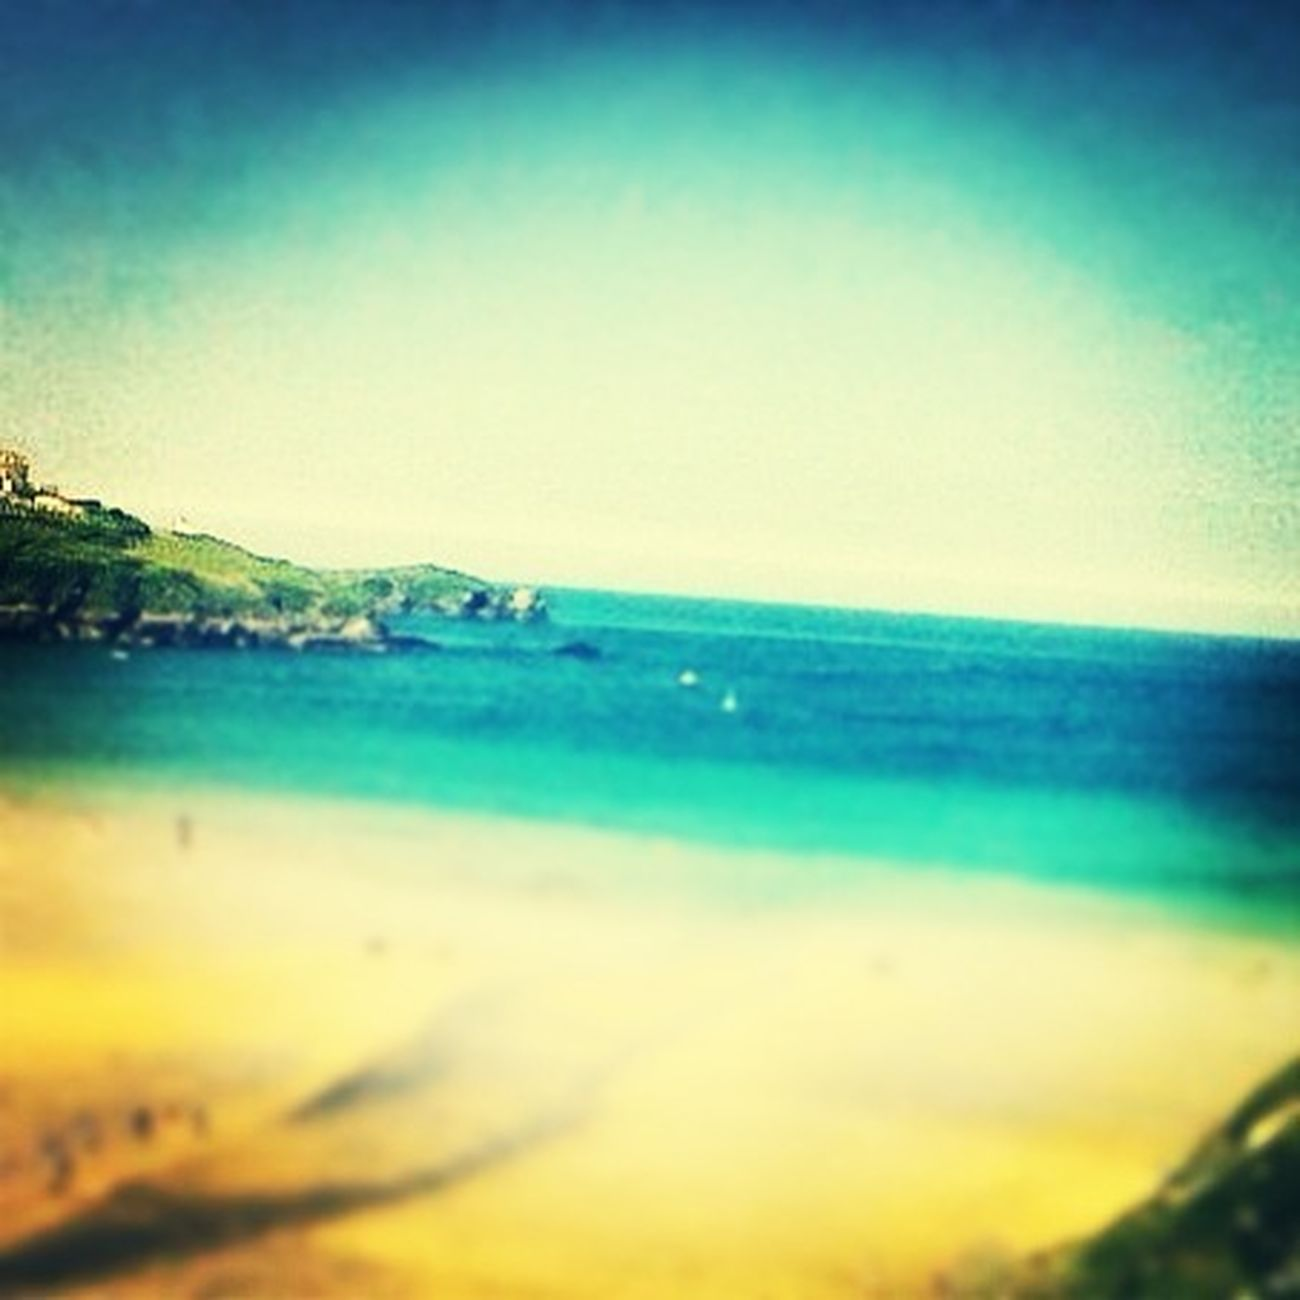 #holiday #fun #seaside #sea #sand #waves #summer #happytimes